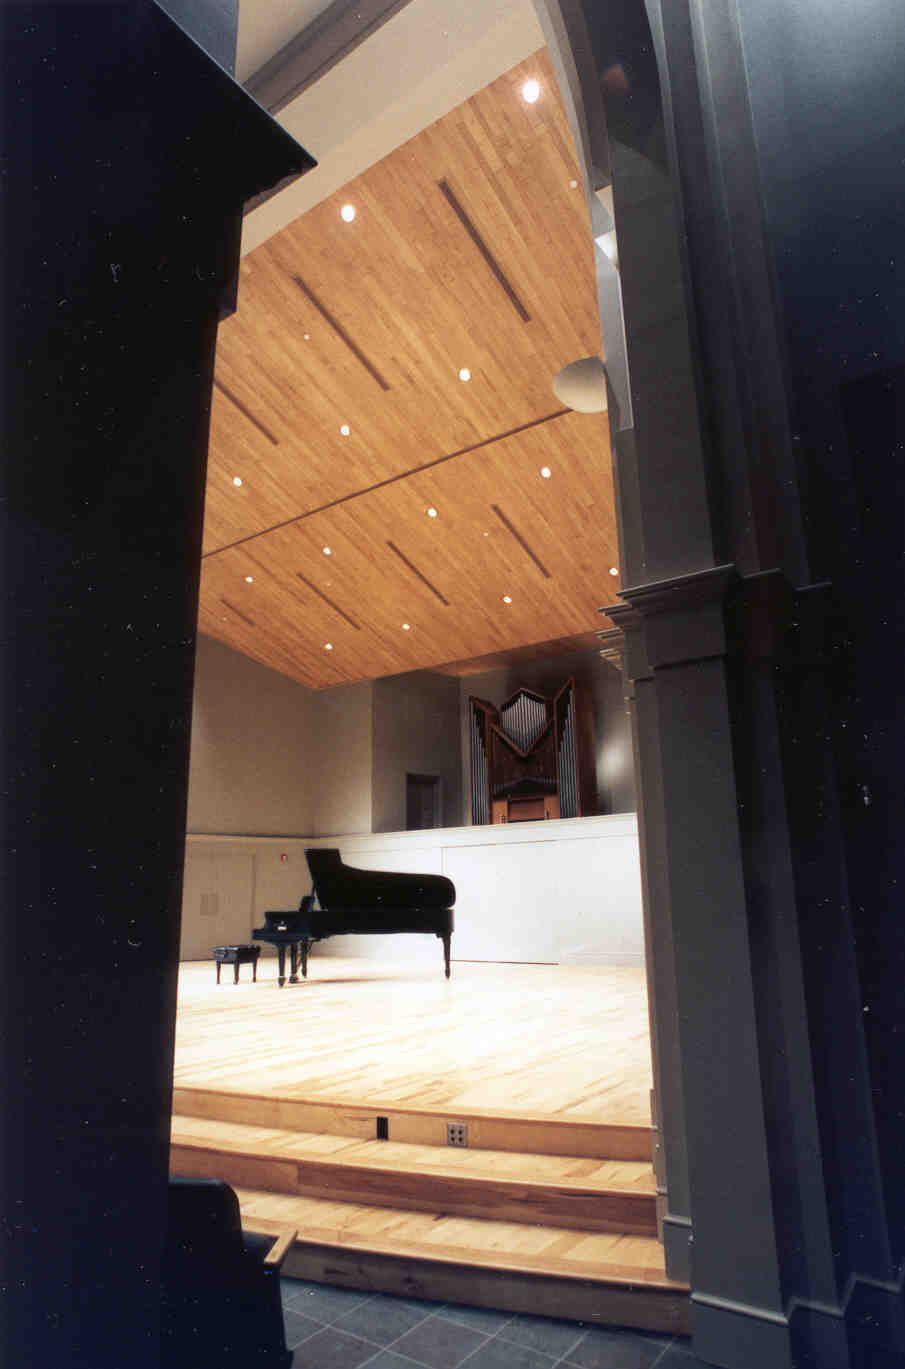 www.rcmarchitects.com - bluffton university - yoder recital hall (5)